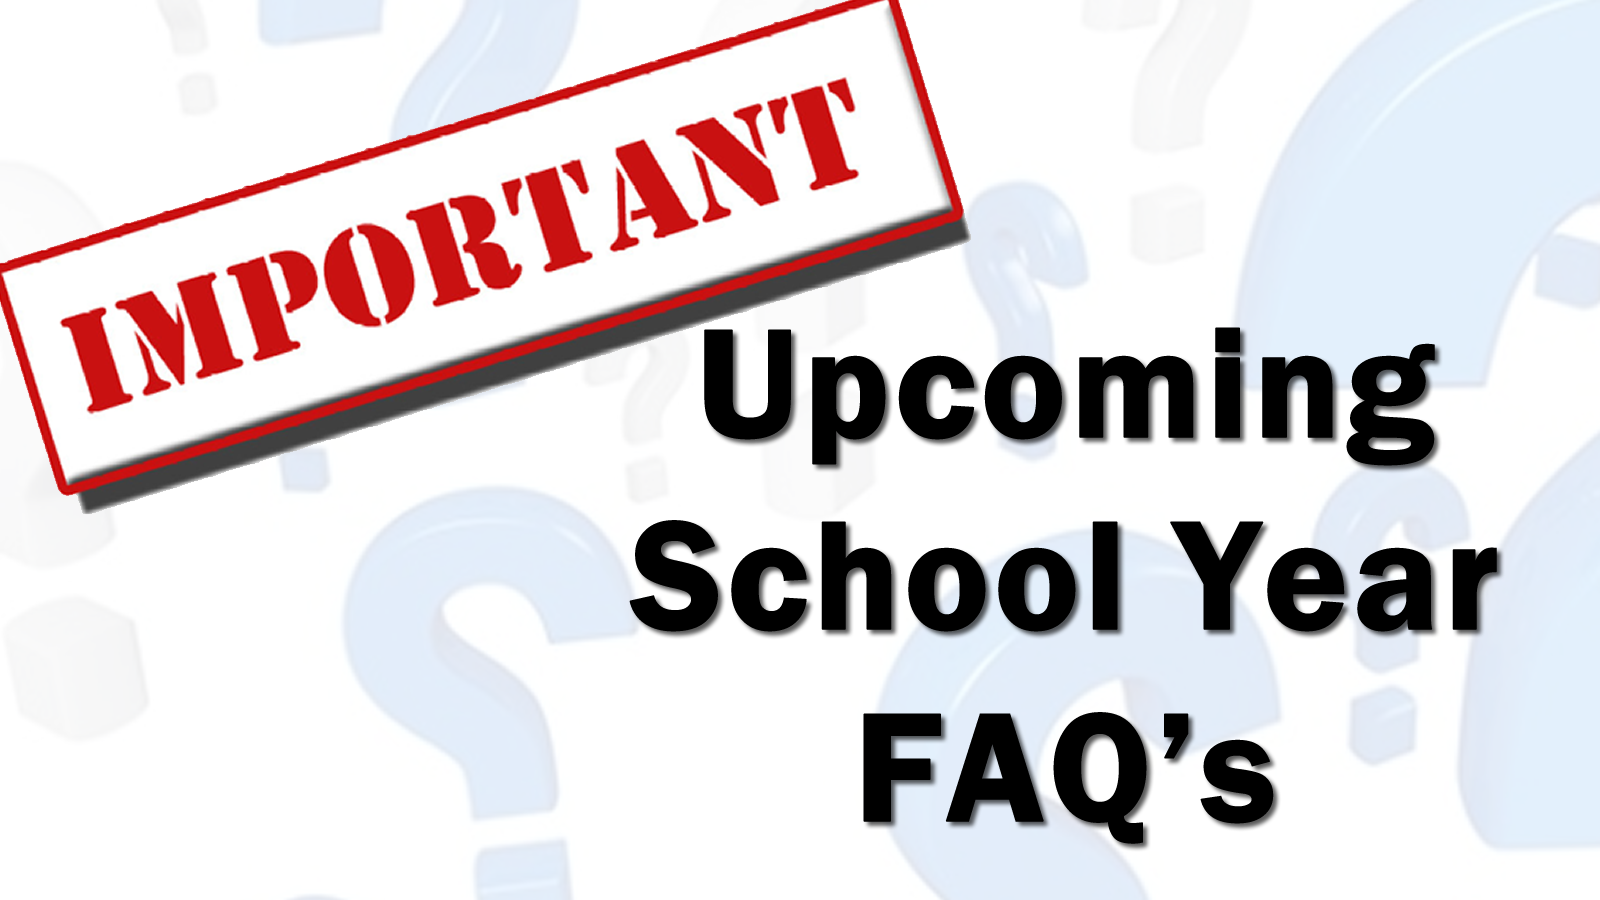 2020-2021 School Year FAQ 1